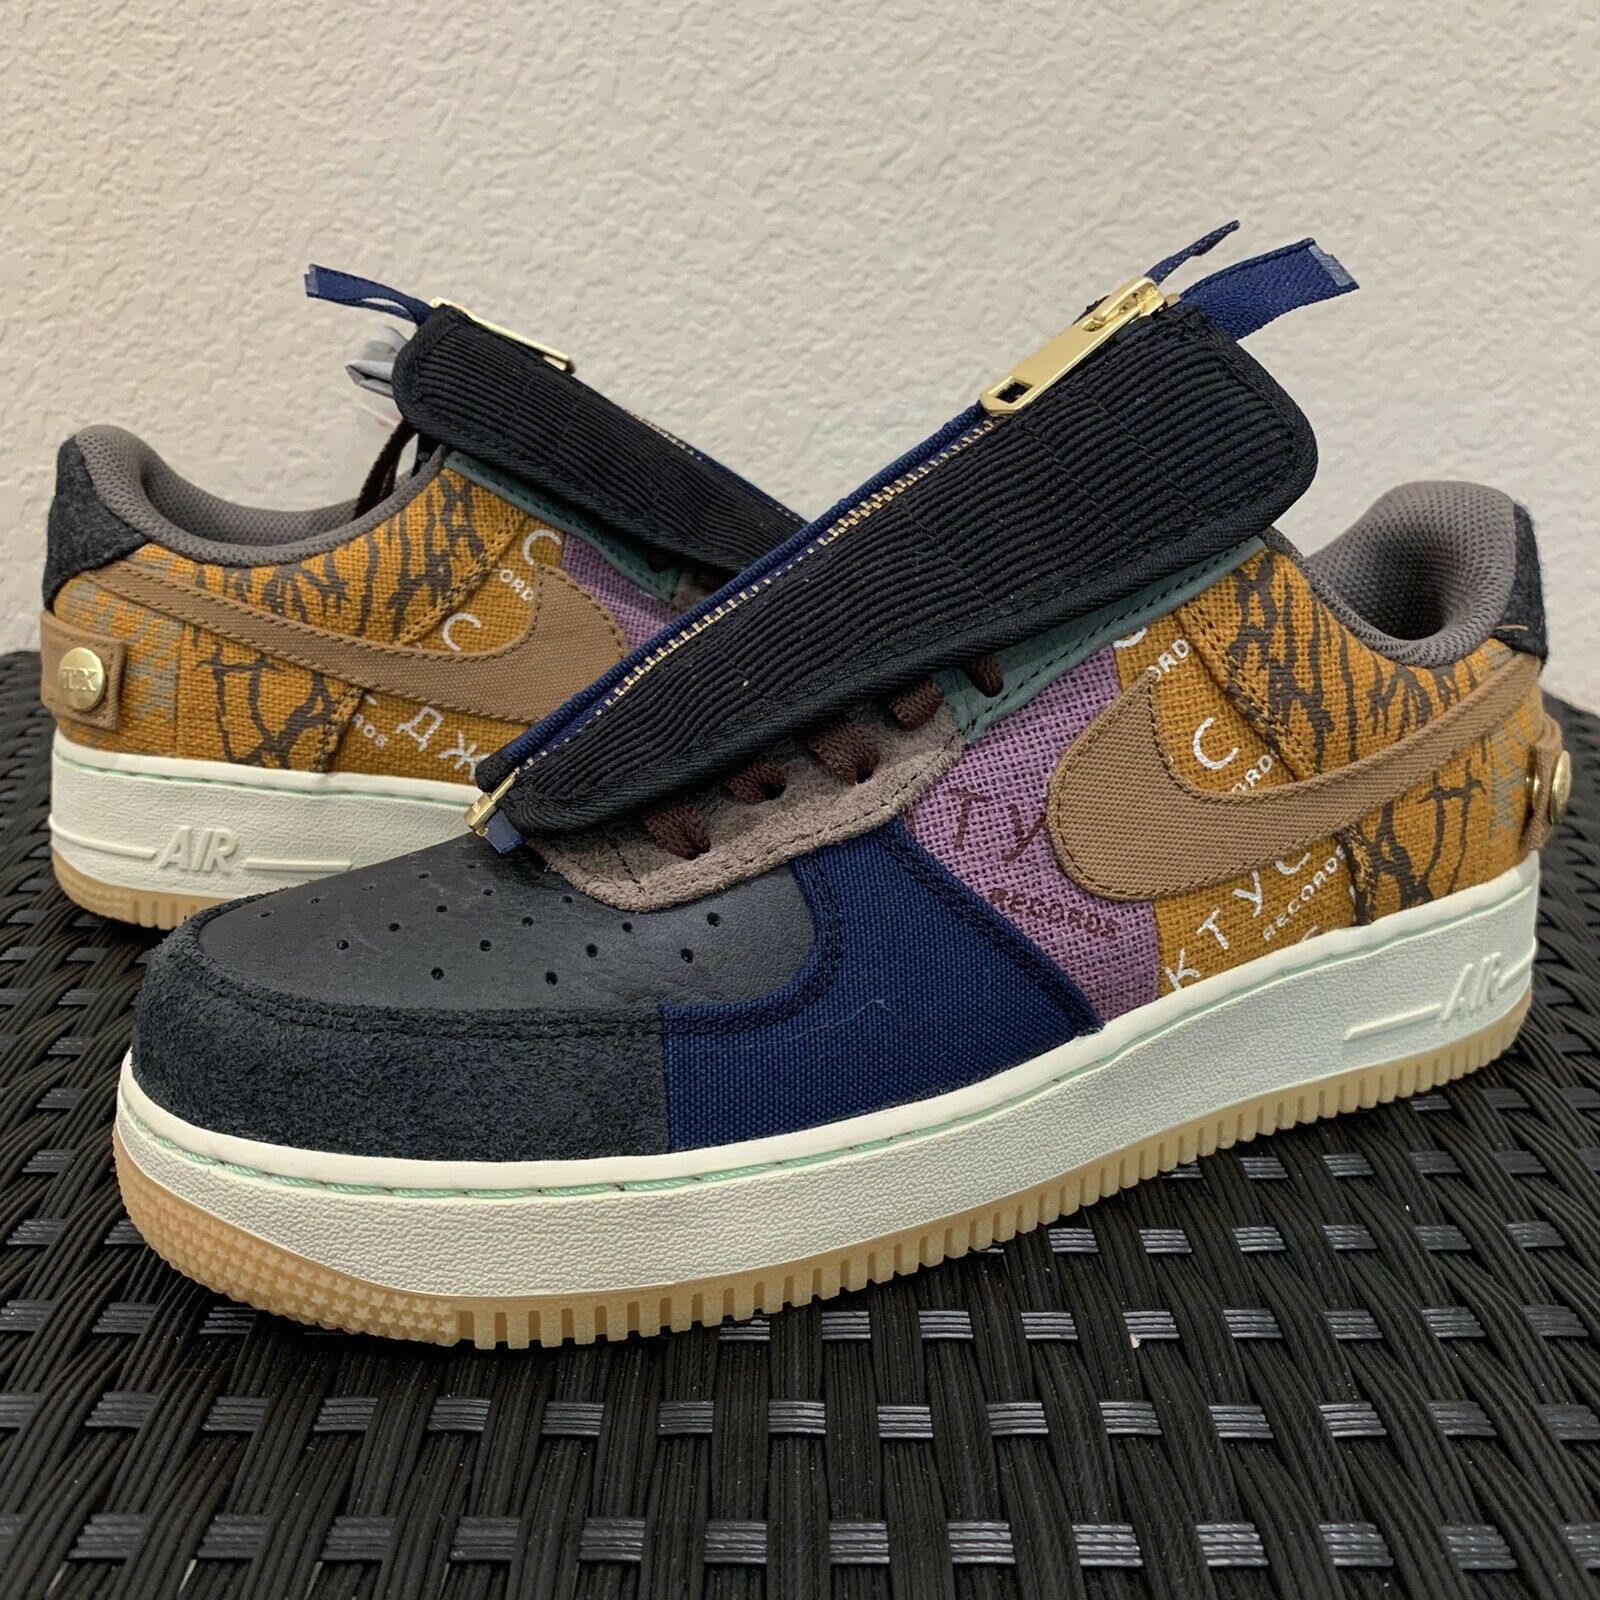 Nike Air Force 1 Low Travis Scott Cactus Jack PS